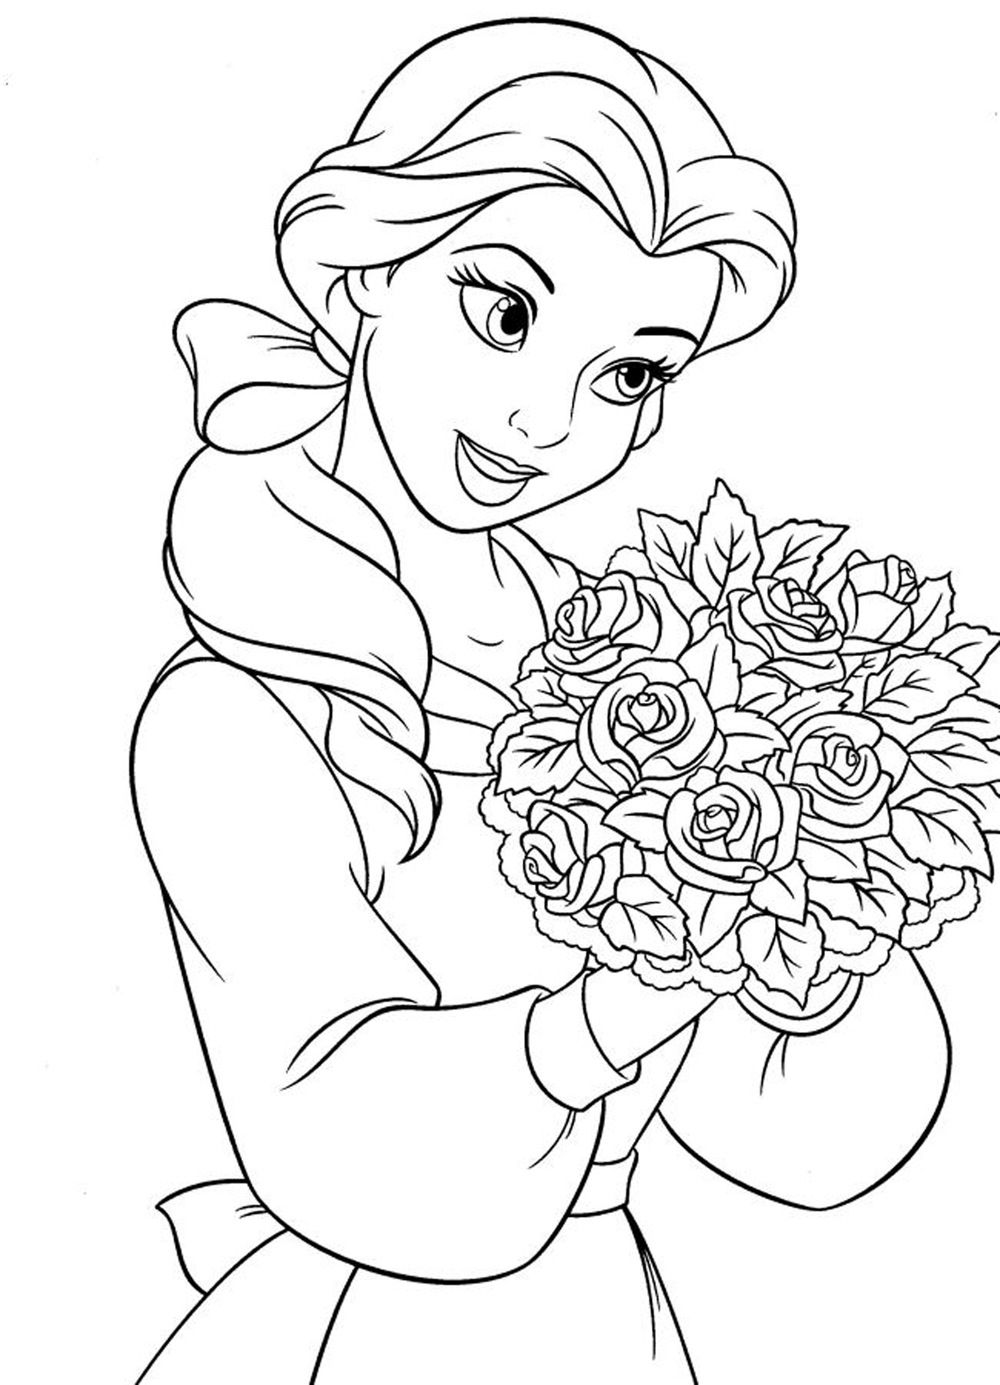 Disney coloring games for girls - Explore Coloring Pages For Girls Kids Coloring And More